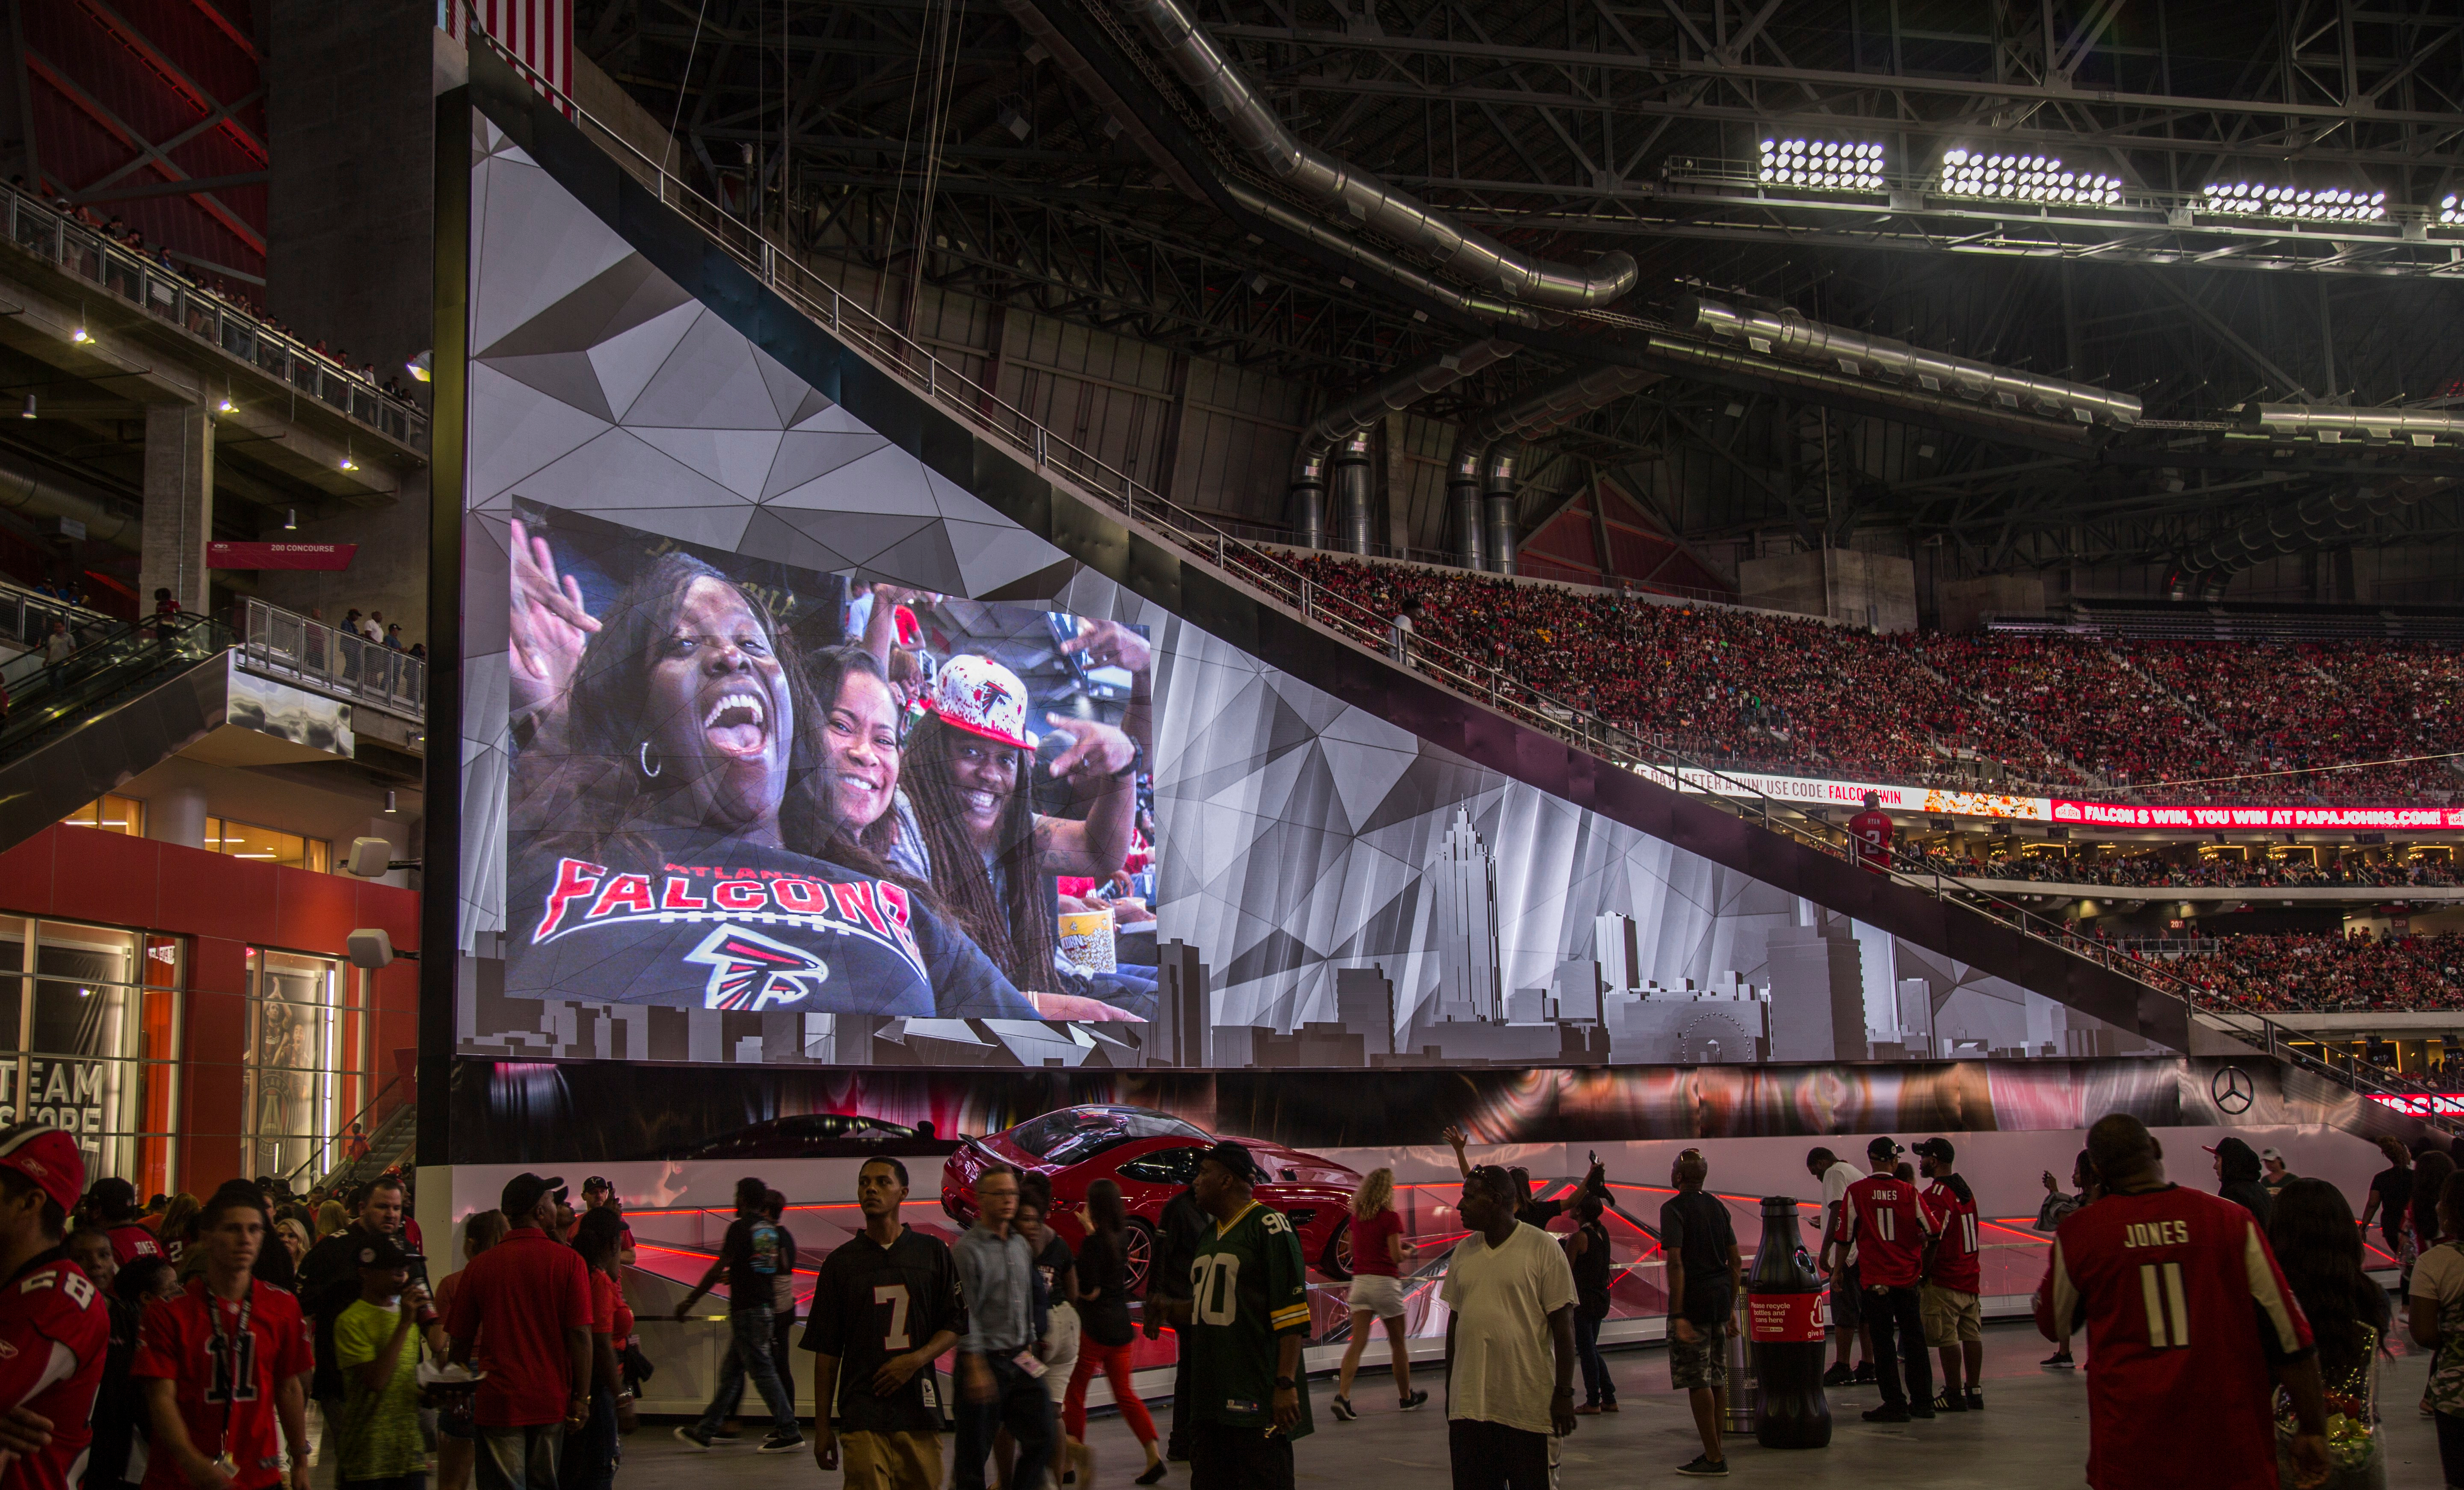 atlantafalcons_feather-wall_04.jpg